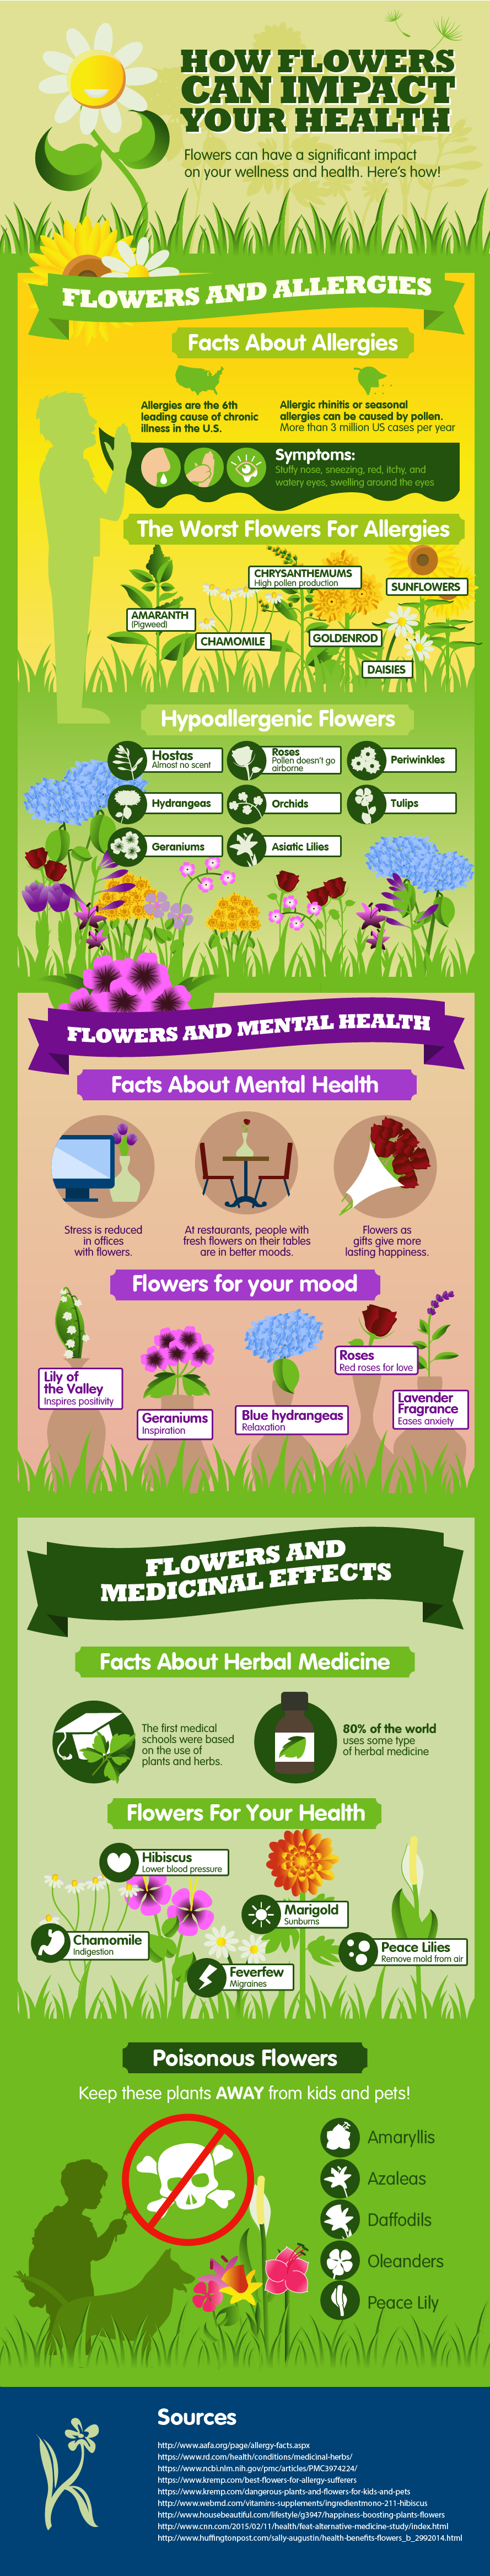 HHow Flowers can Impact your Health